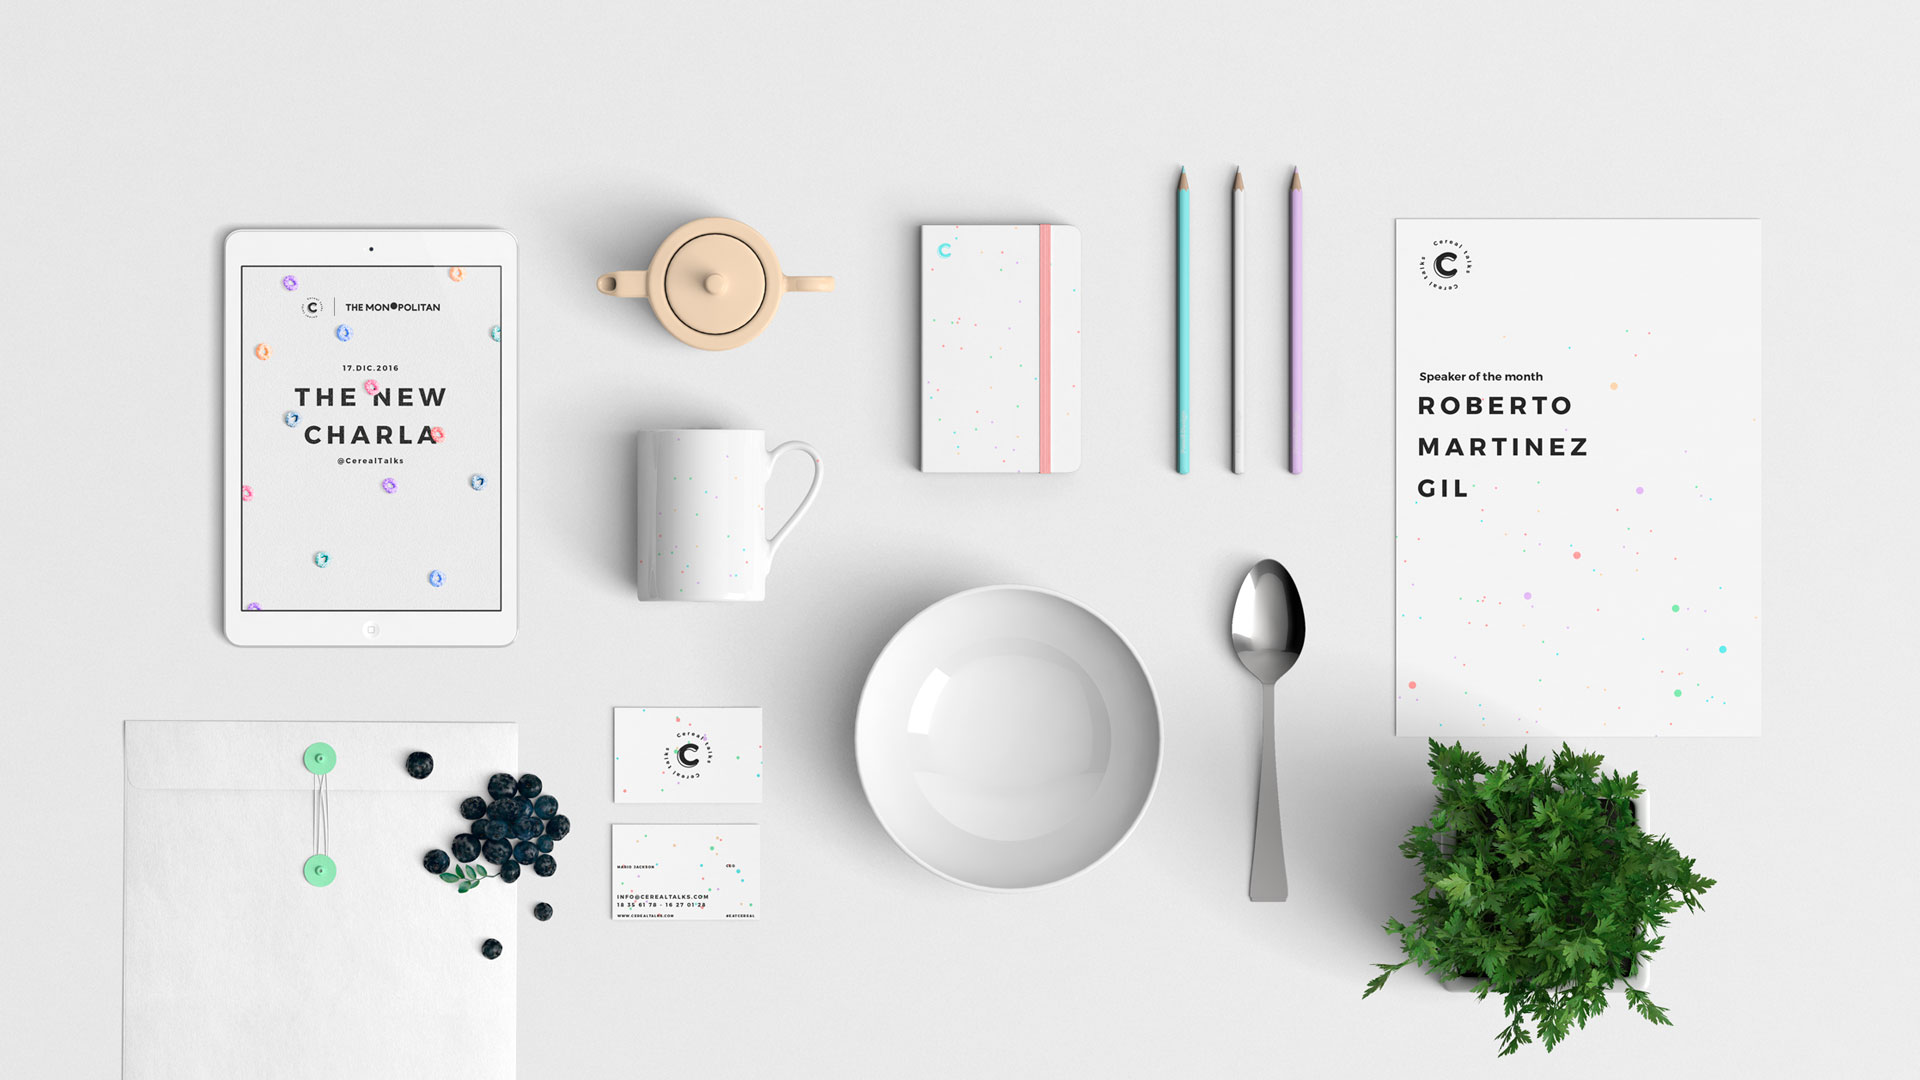 Creating a fun identity for a creative event based on the design elements of the hosting site.